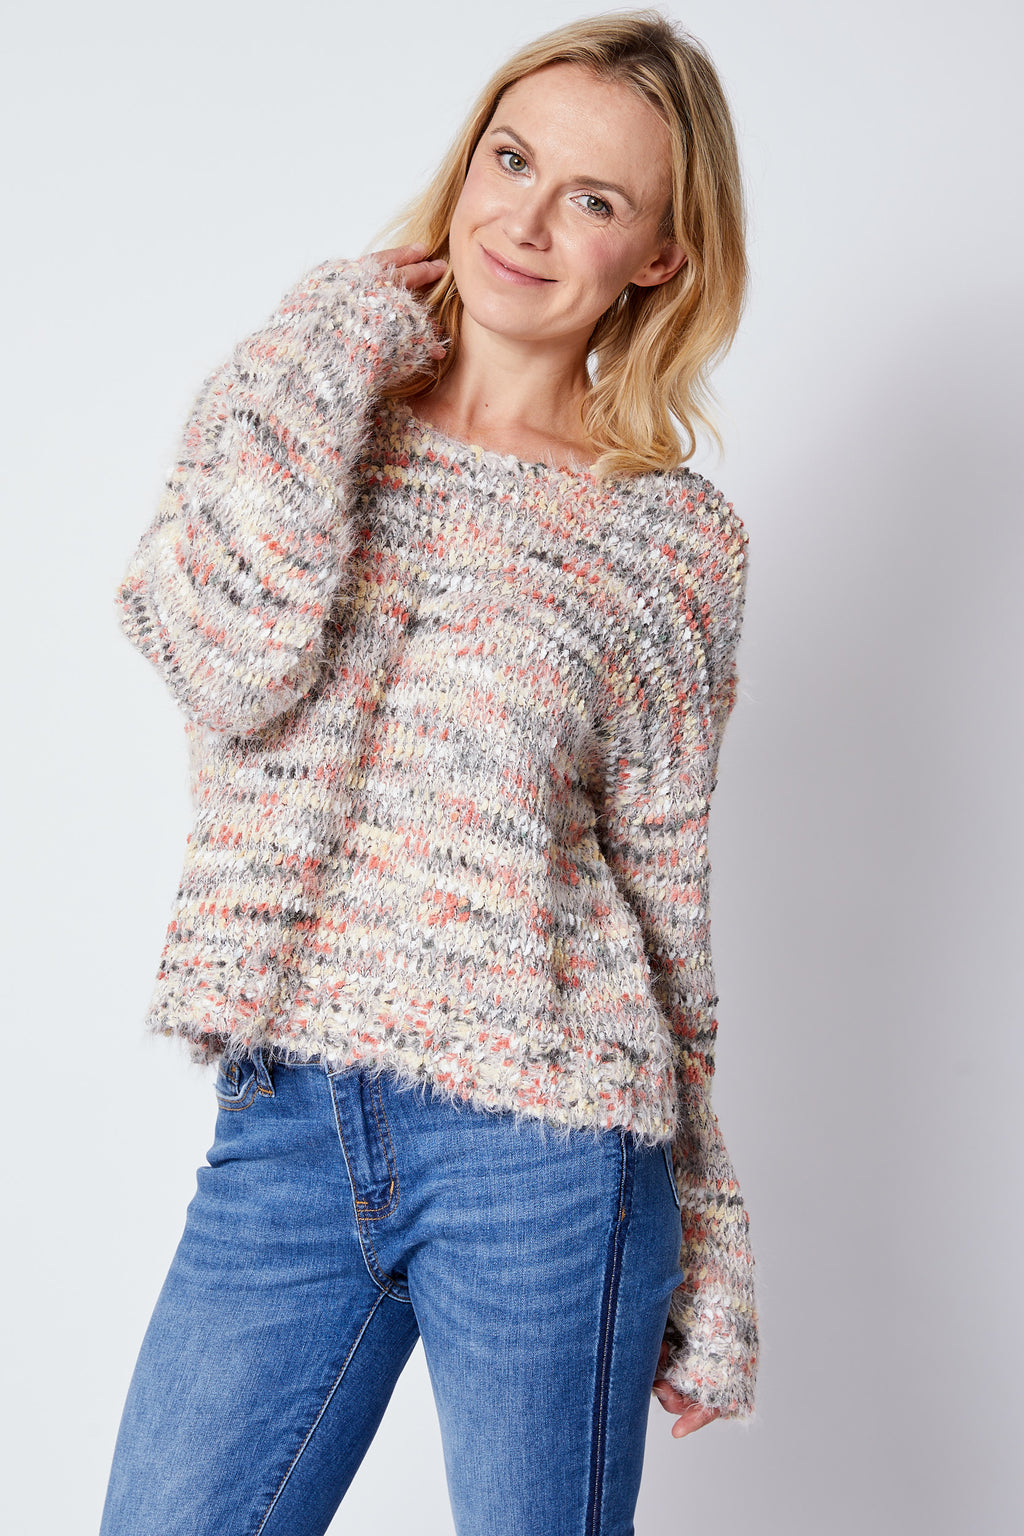 Multi Yarn Fuzzy Sweater - Jacqueline B Clothing